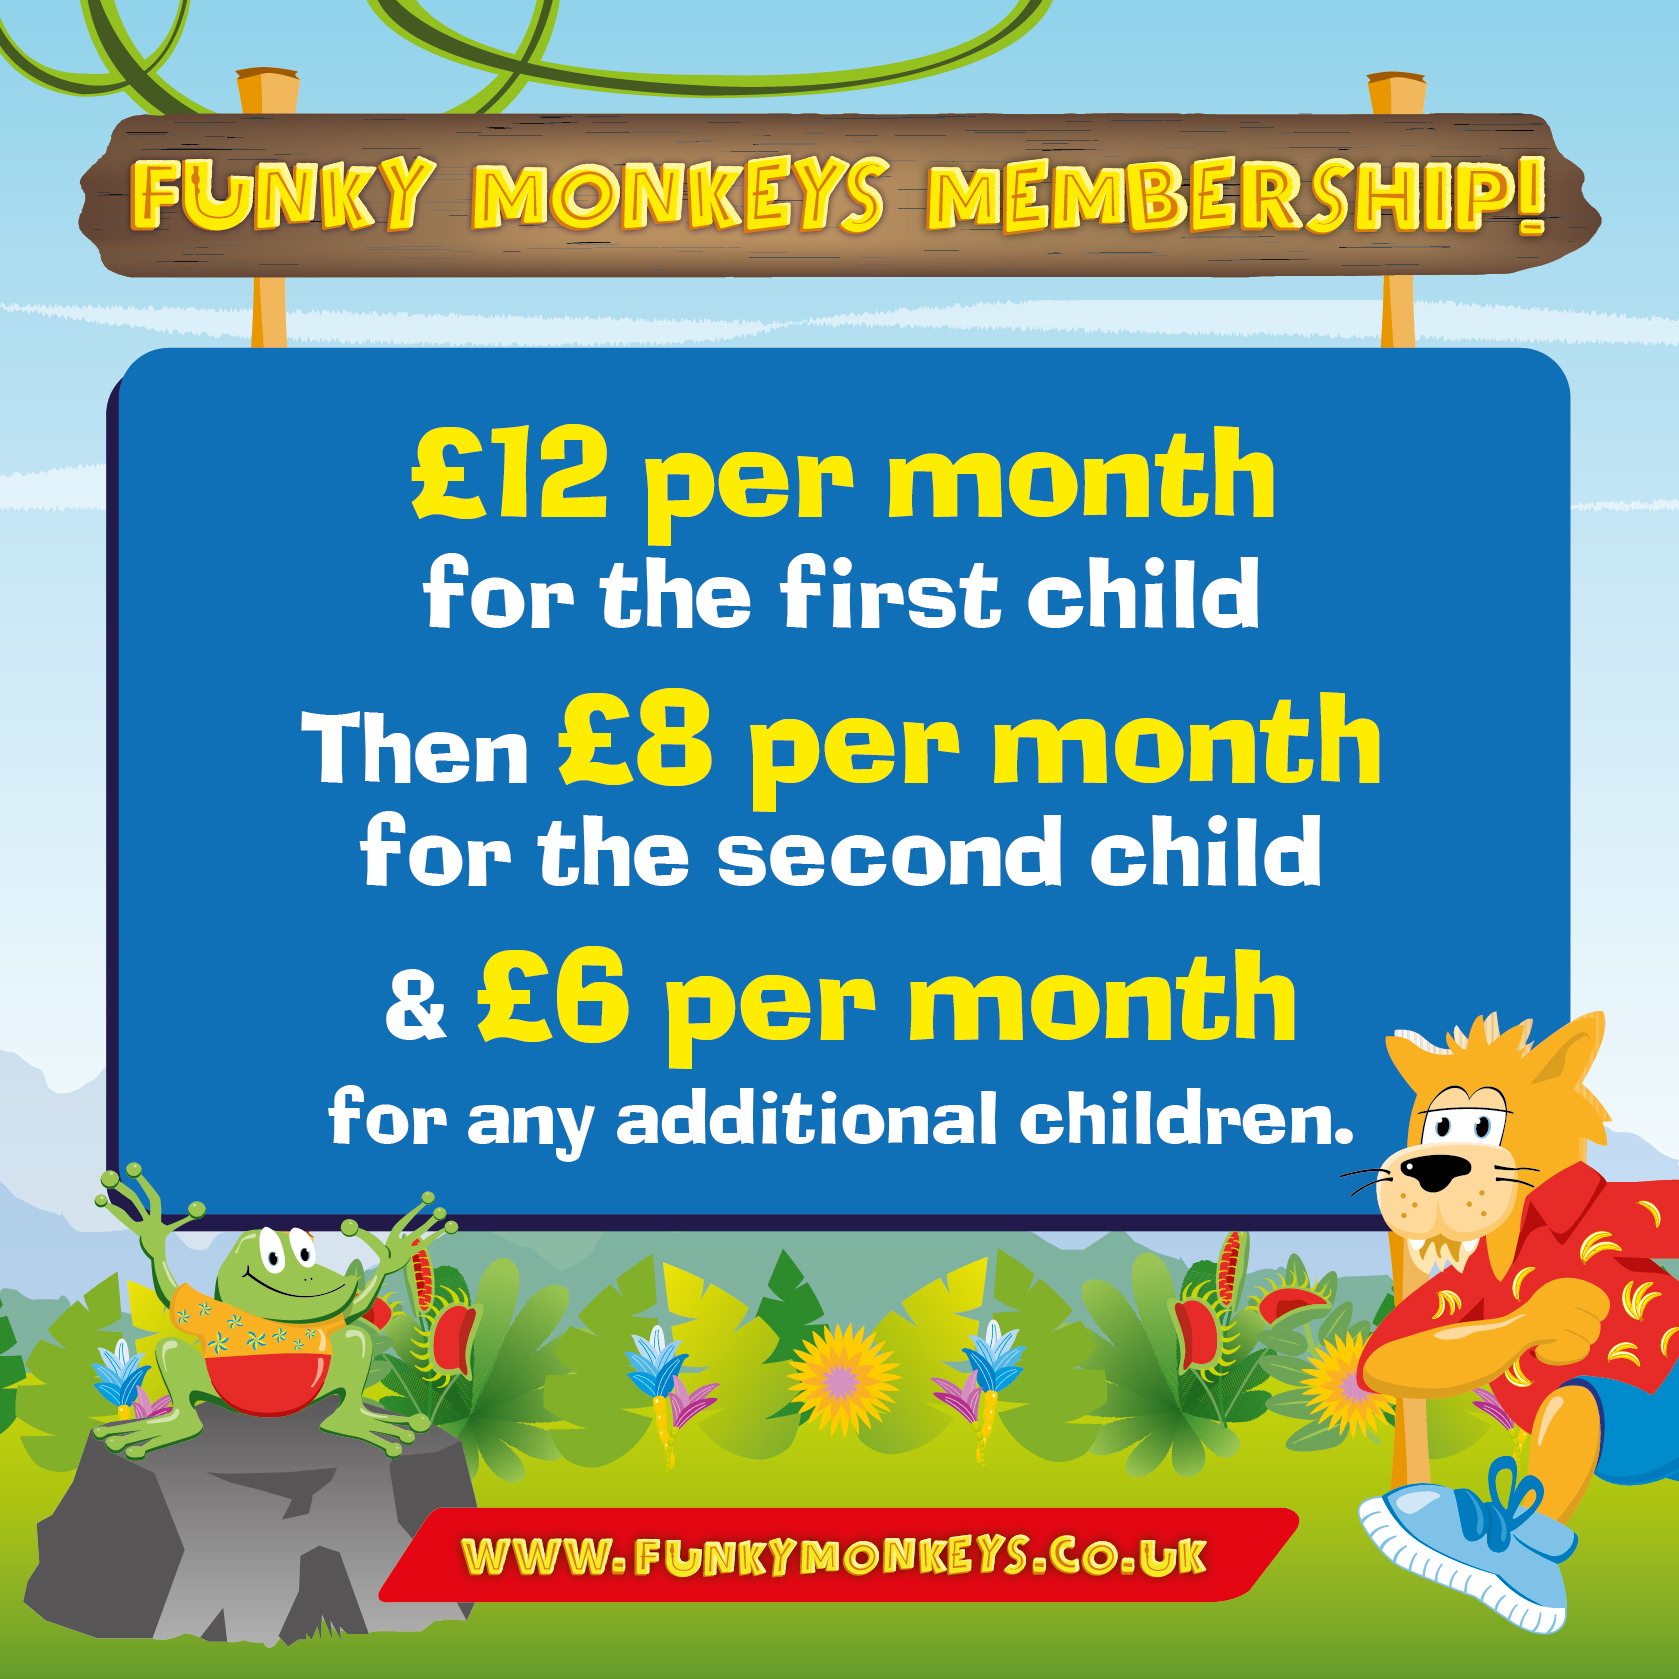 Funky Monkey's Soft Play Area – New Square Shopping Centre, West Bromwich